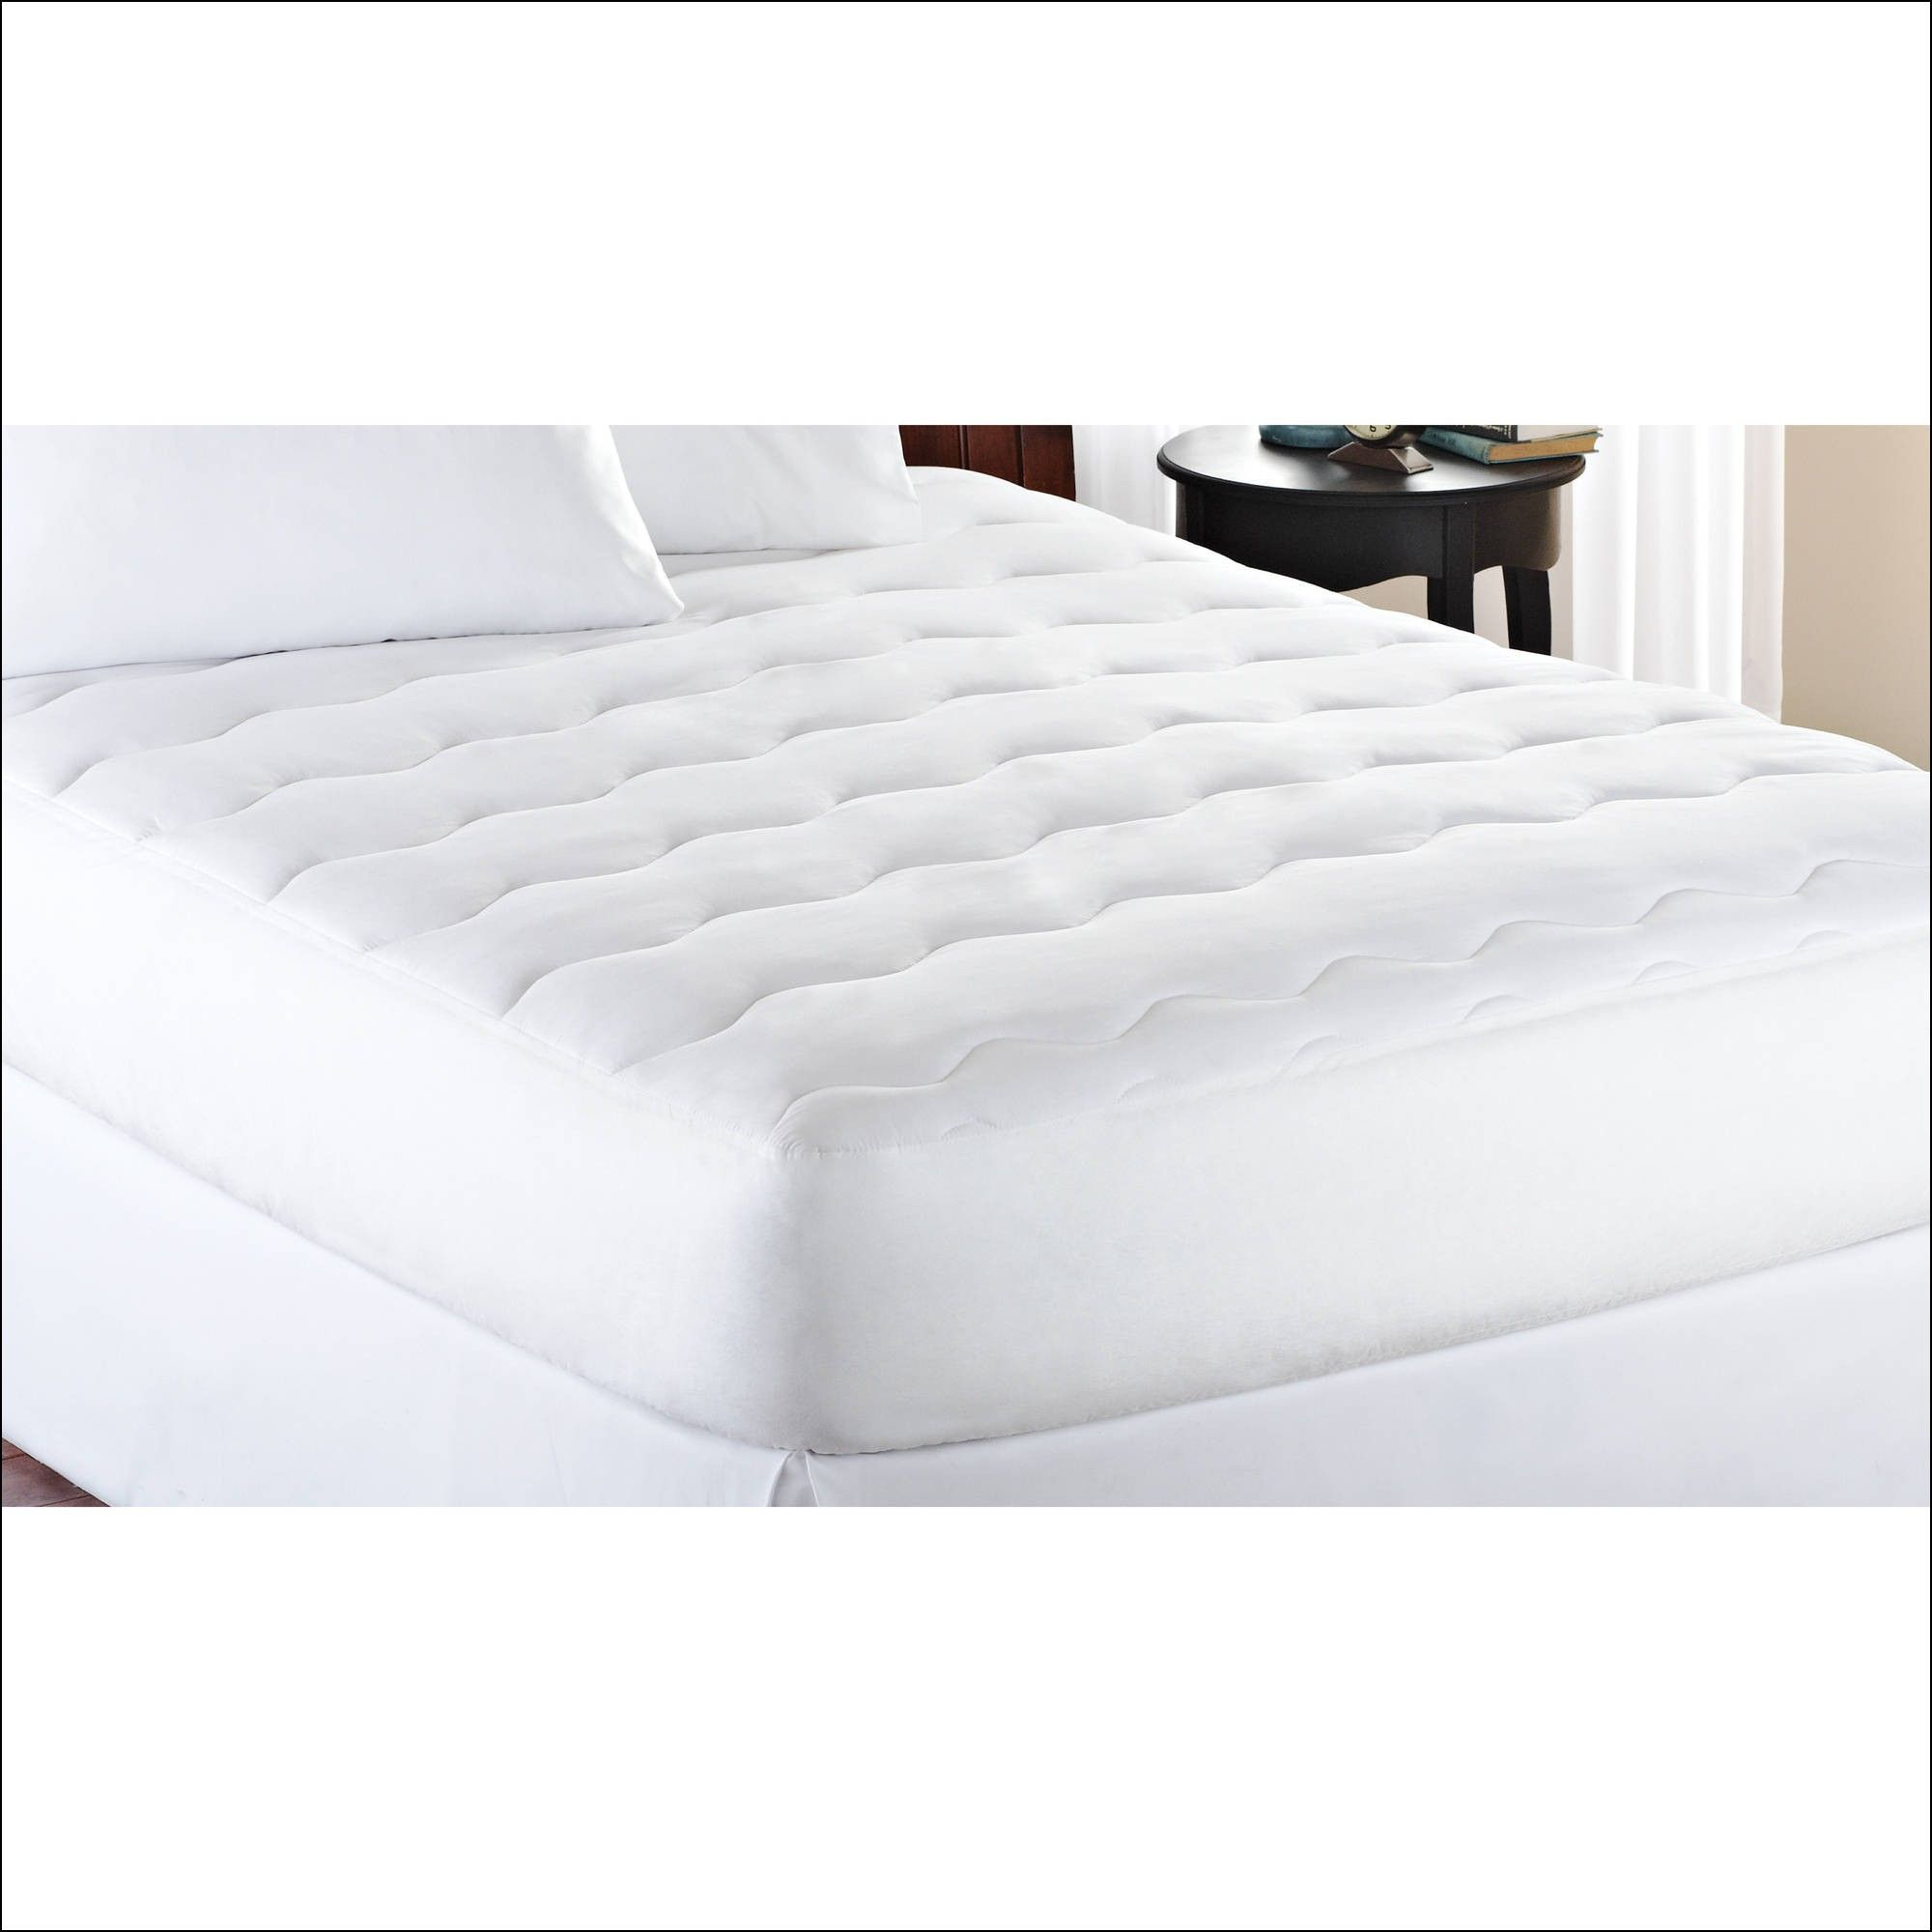 Pillow Top Mattress Covers New Thick Pillow Top Mattress Pad  Mattress Ideas  Pinterest  Pillow